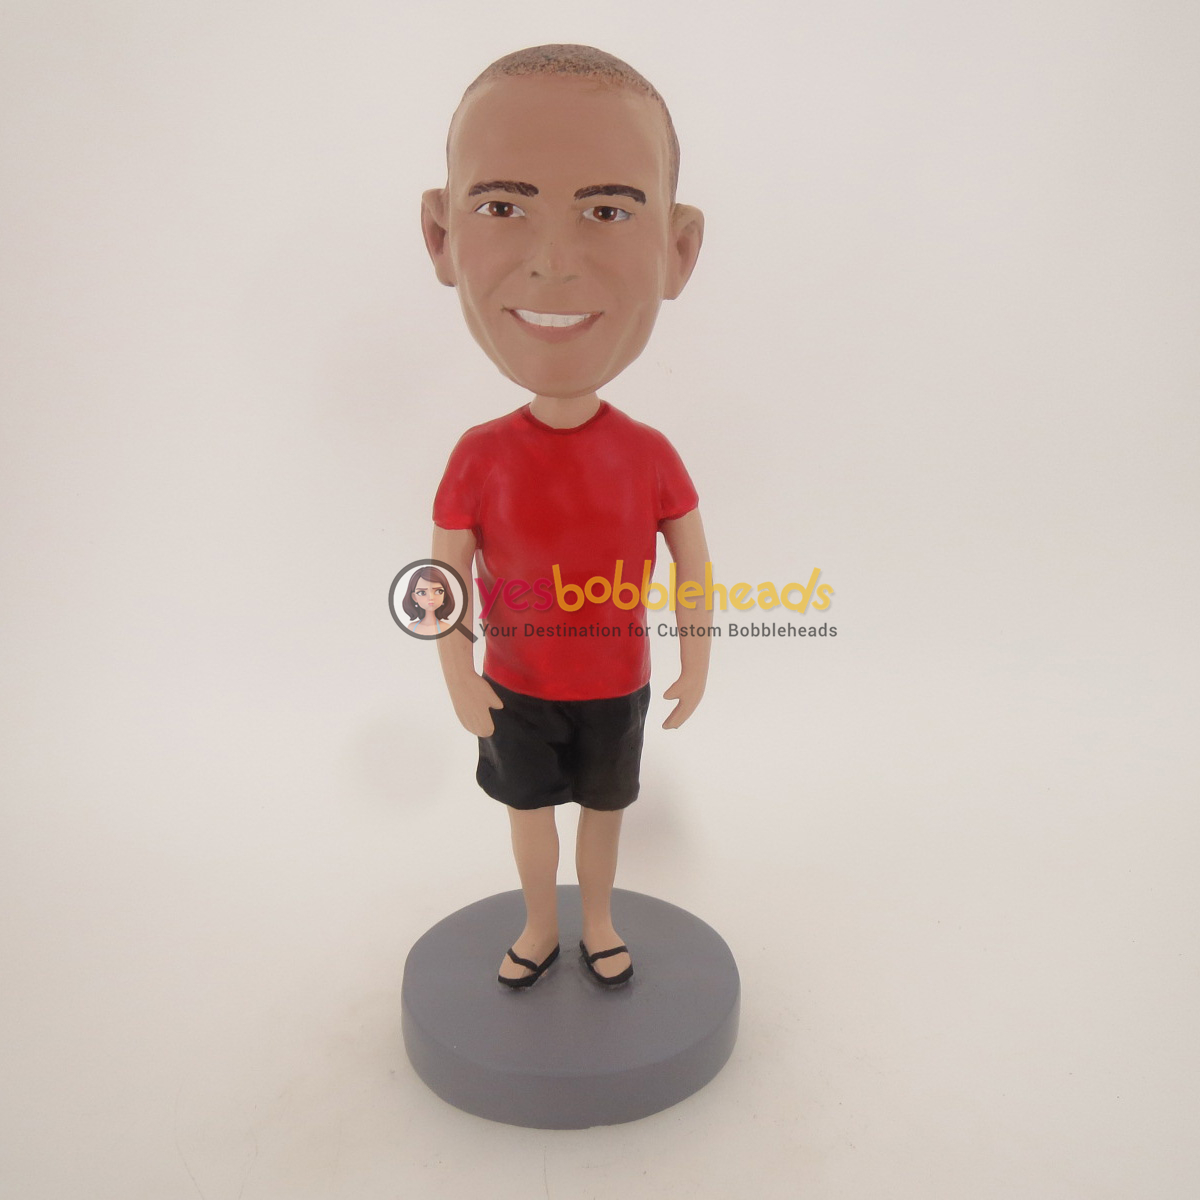 Picture of Custom Bobblehead Doll: Casual Man In Red and Black